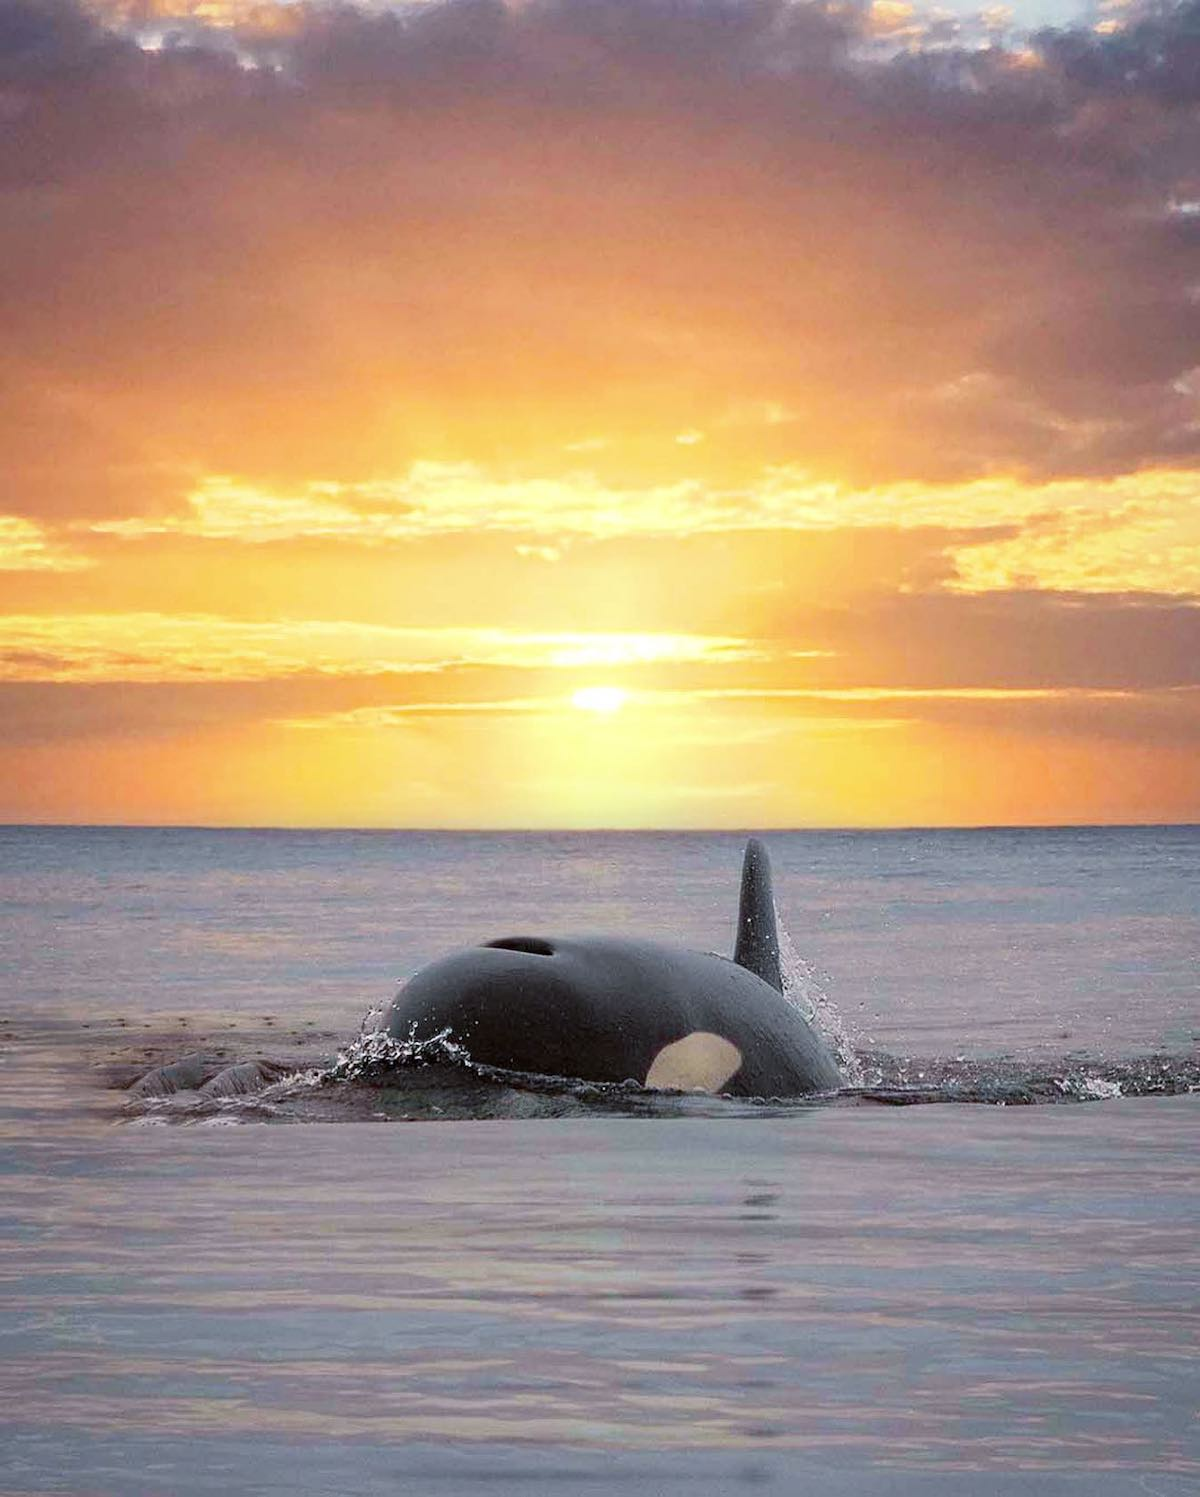 Killer Whale Swimming in Alaska with Sunset Behind